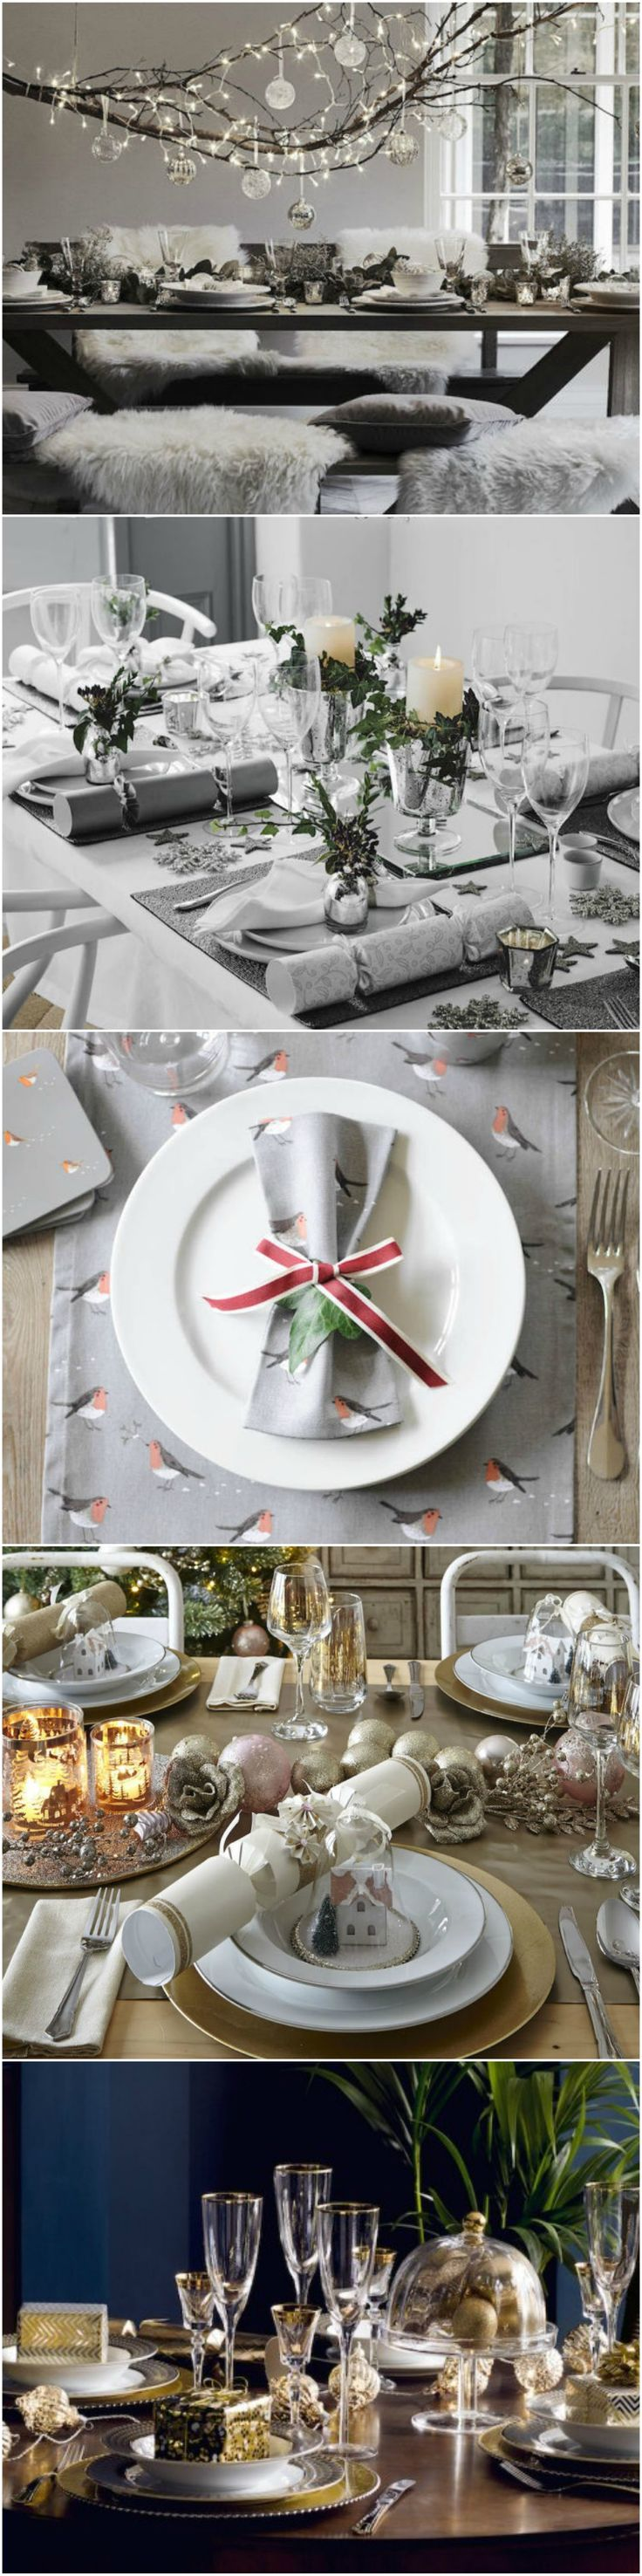 Dazzle your guests and make your festive lunch extra special with these Christmas table setting suggestions. Create a magical rustic winter wonderland by hanging foraged branches wrapped in twinkling fairylights and decorated with glass baubles over your table. Or, go for a dramatic luxe feel with painted deep blue walls, layering up Deco inspired crockery in gleaming gold on the table. Find more tips at housebeautiful.co.uk